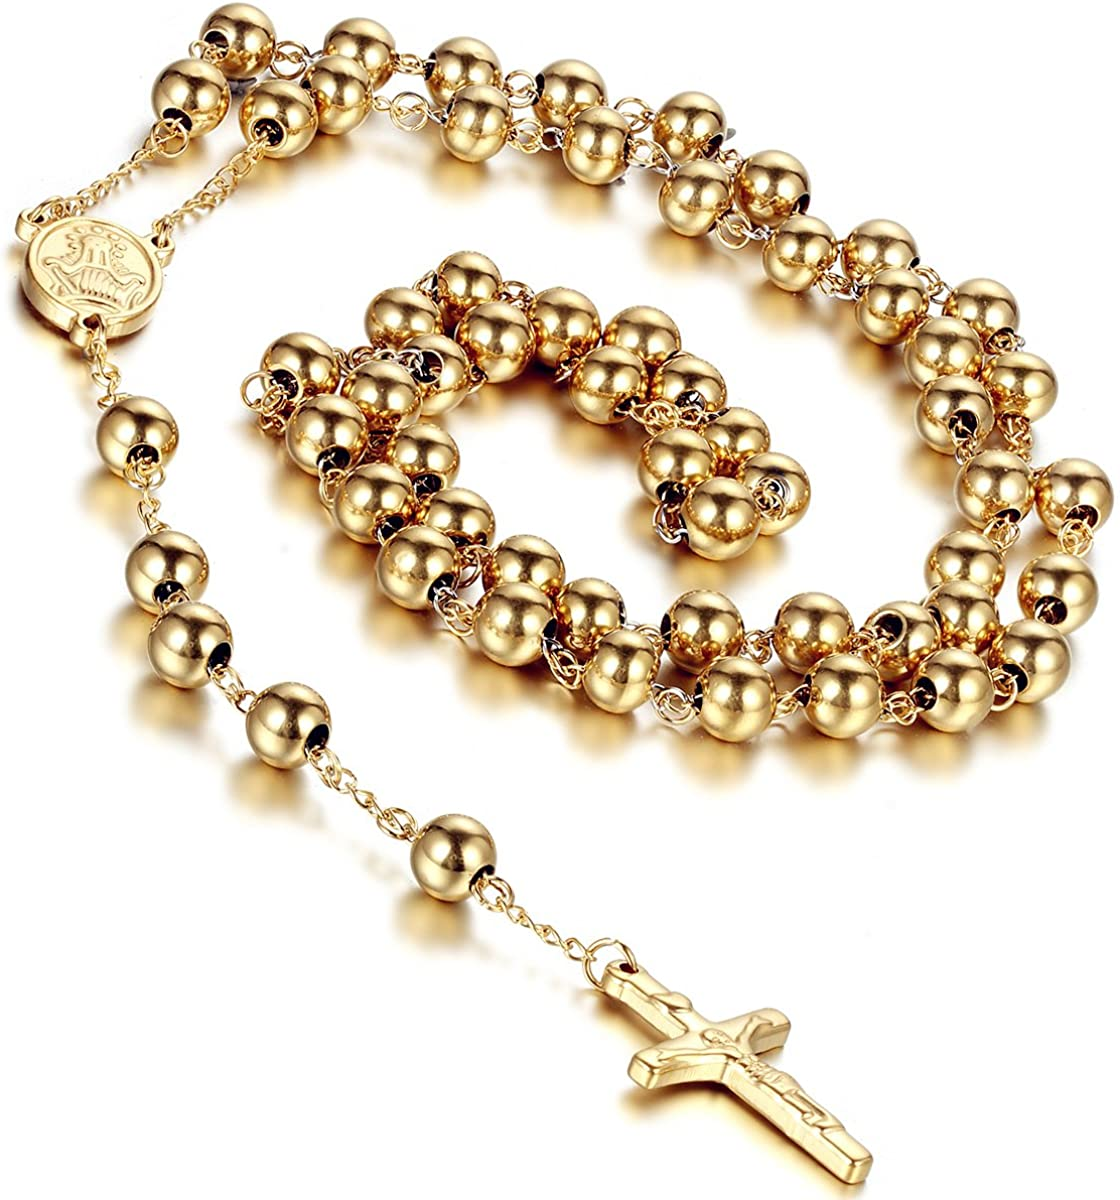 Flongo Womens Men's Stainless Steel 8mm Beads Gold Jesus Christ Crucifix Cross Rosary Pendant Necklace, 37 inch ?-